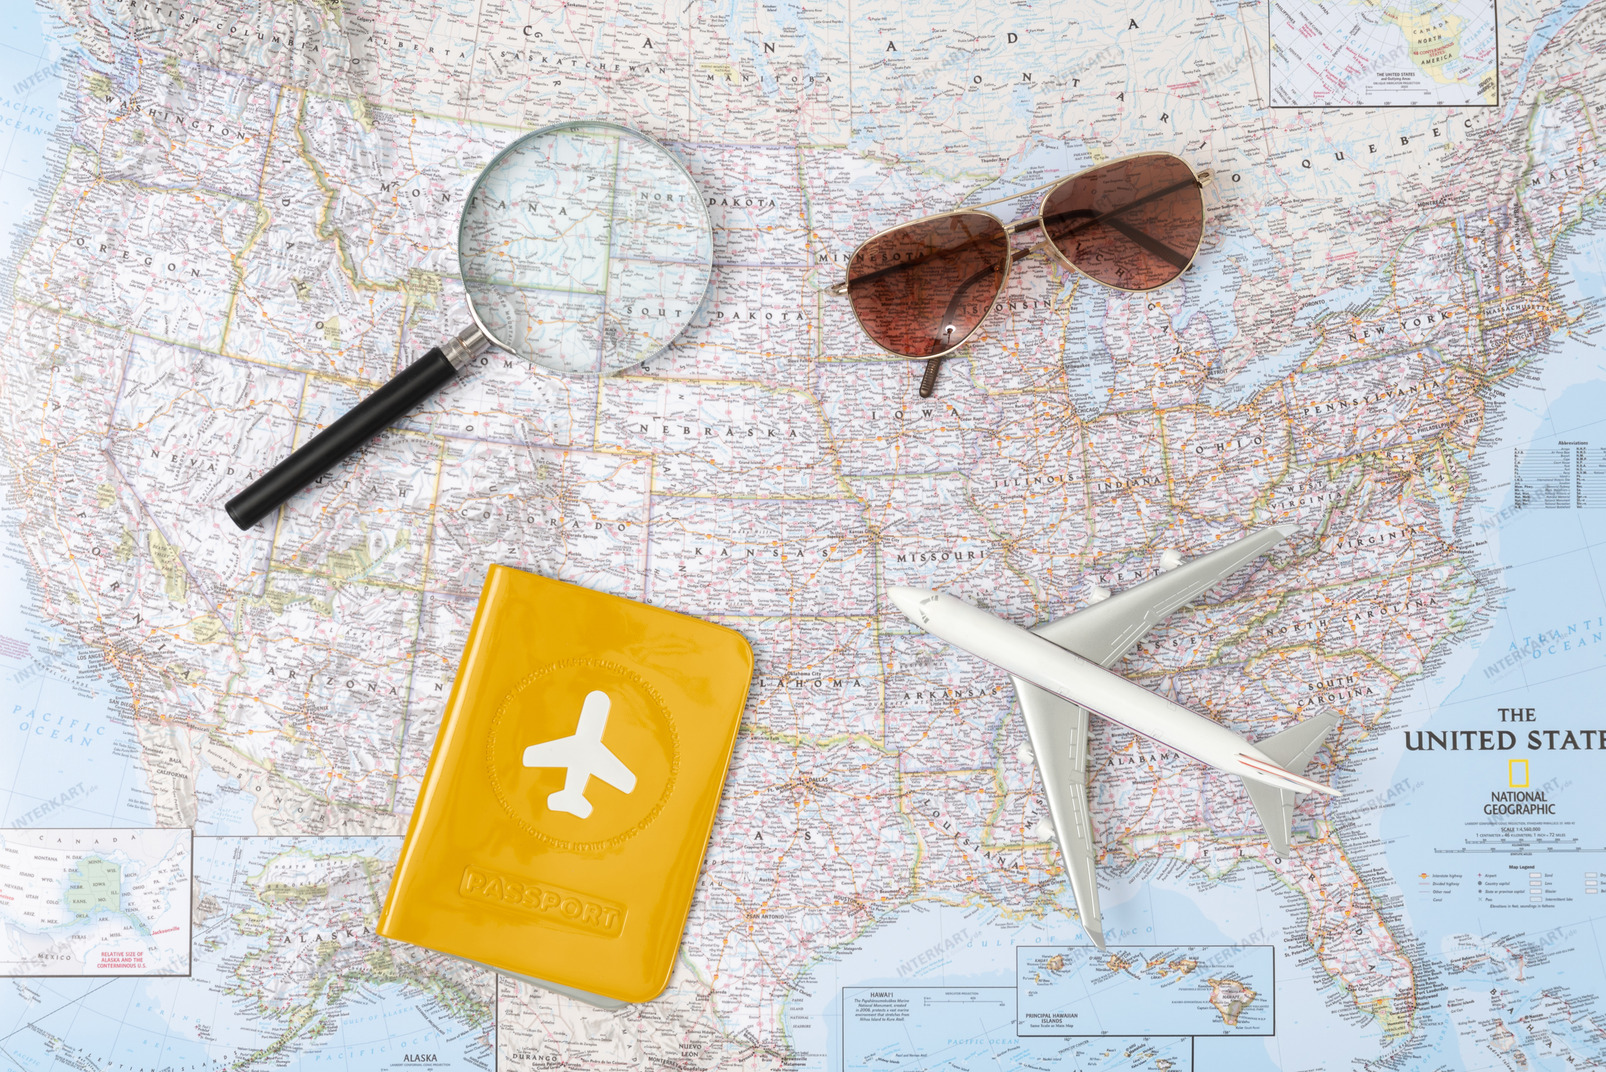 Good thing that i grabbed my shades (and my passport), 'cause right now i'm in a hot state ;) (of america)